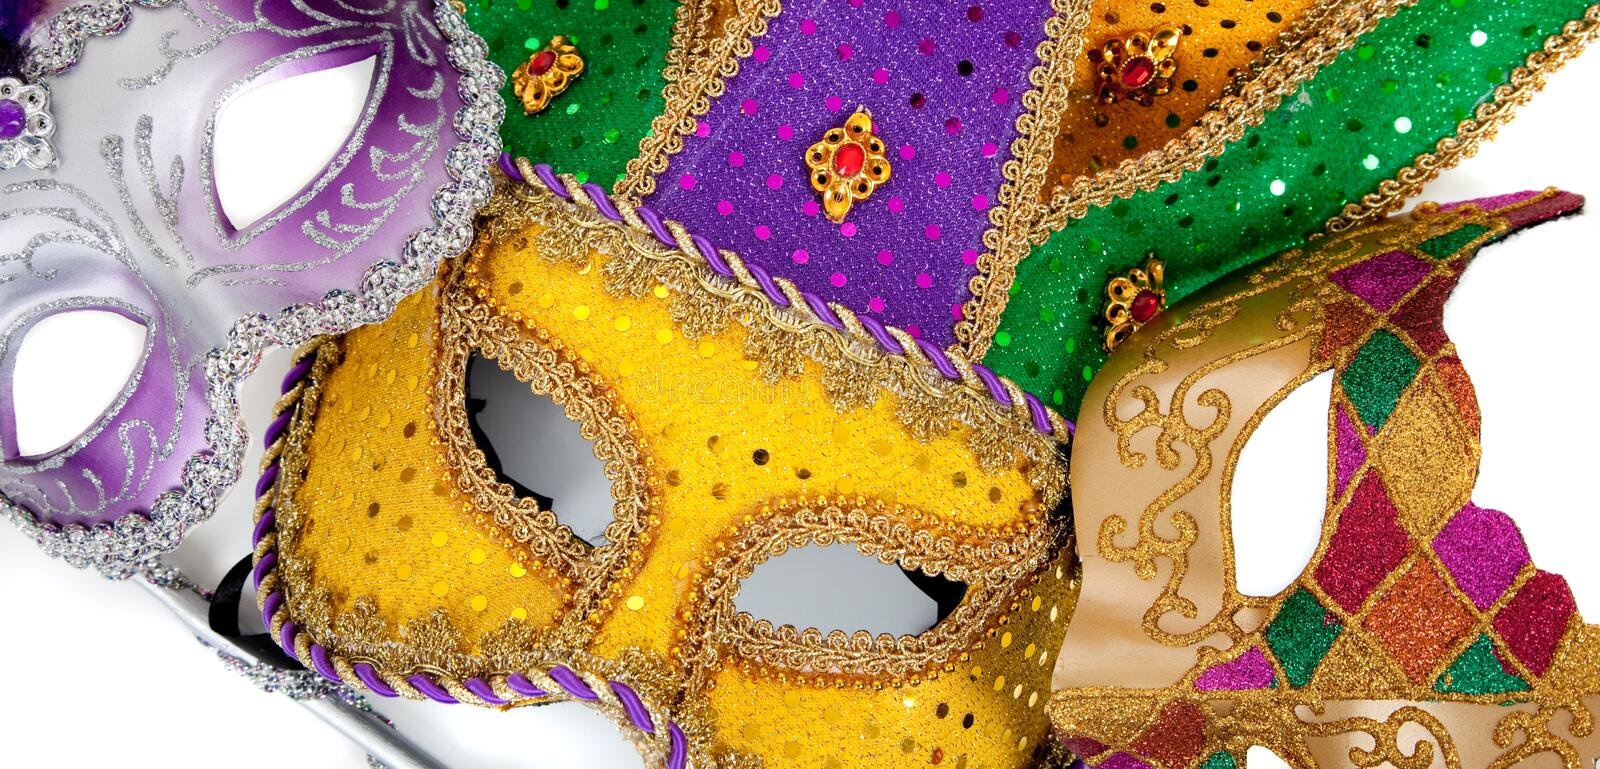 Assorted mardi gra masks on white. Assorted mardi gra masks including gold, purple and green on a white background stock photos